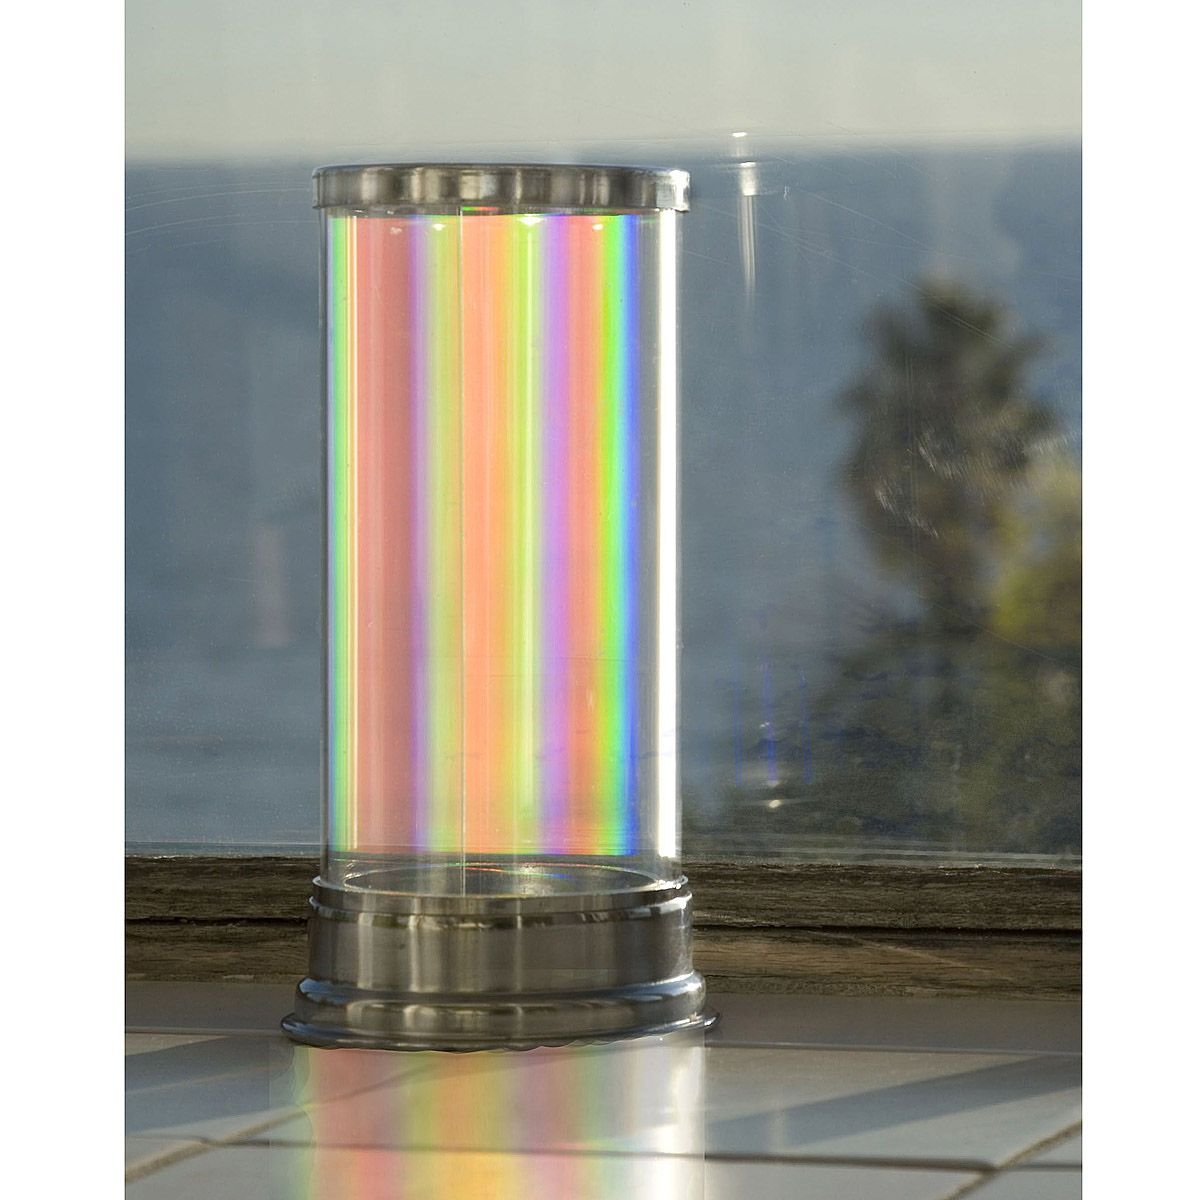 This glass lamp will cast shimmering prismatic rainbows across your walls.